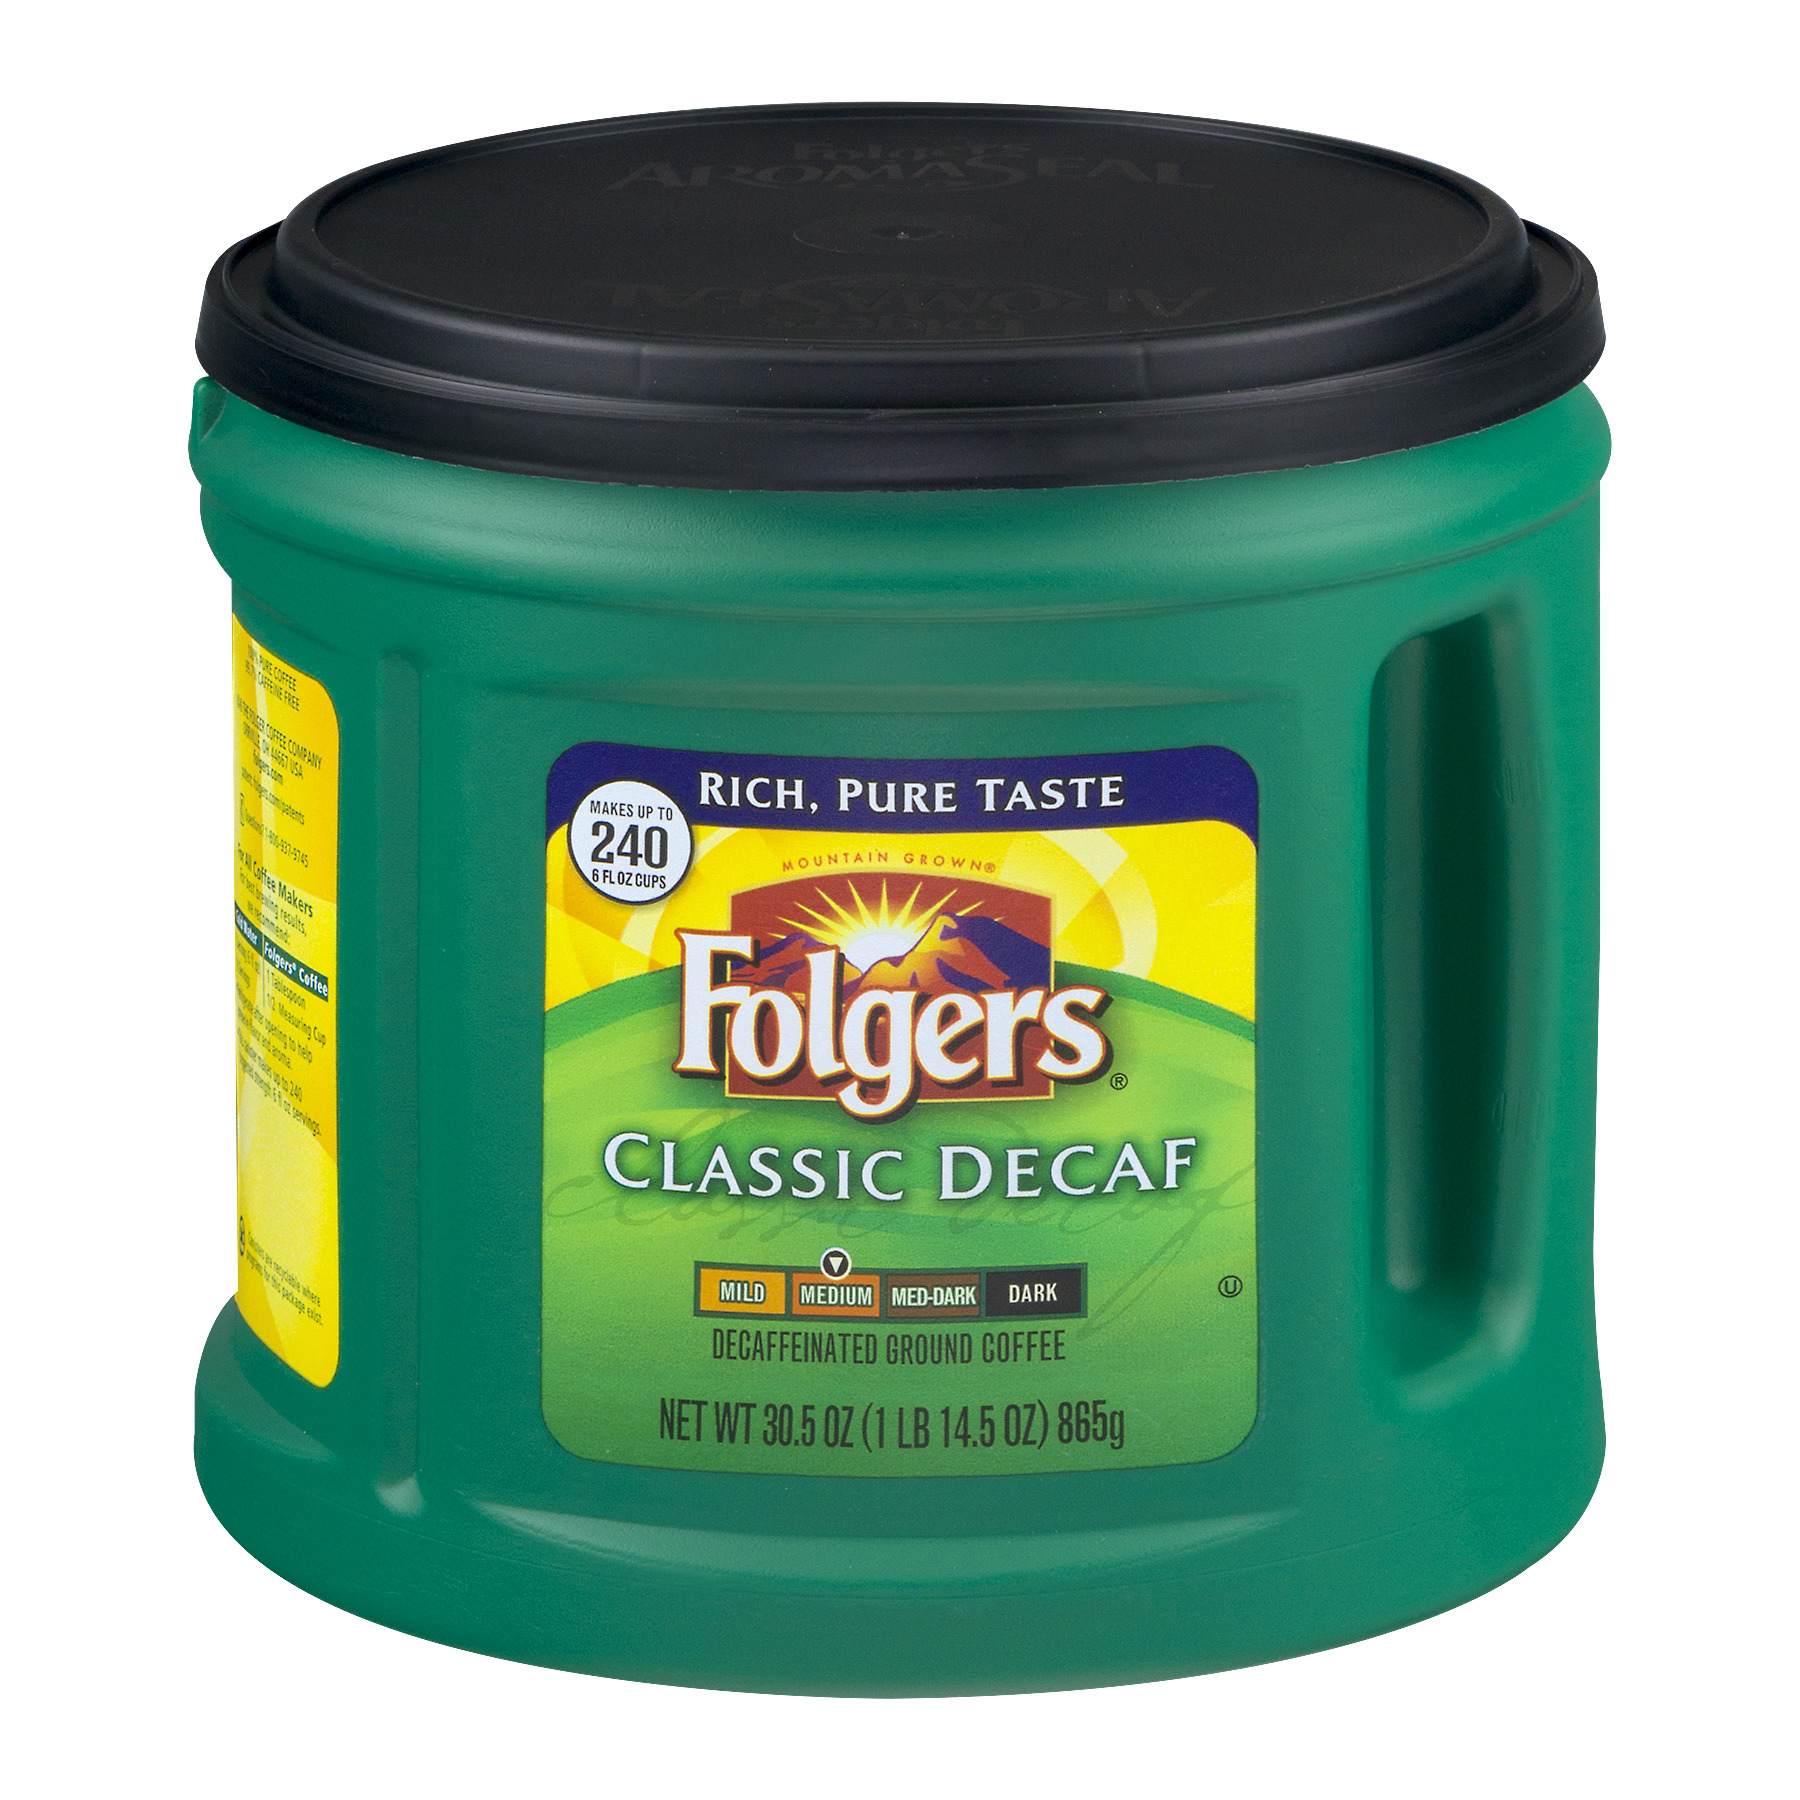 Folgers Classic Decaf Medium Decaffeinated Ground Coffee, 30.5 OZ